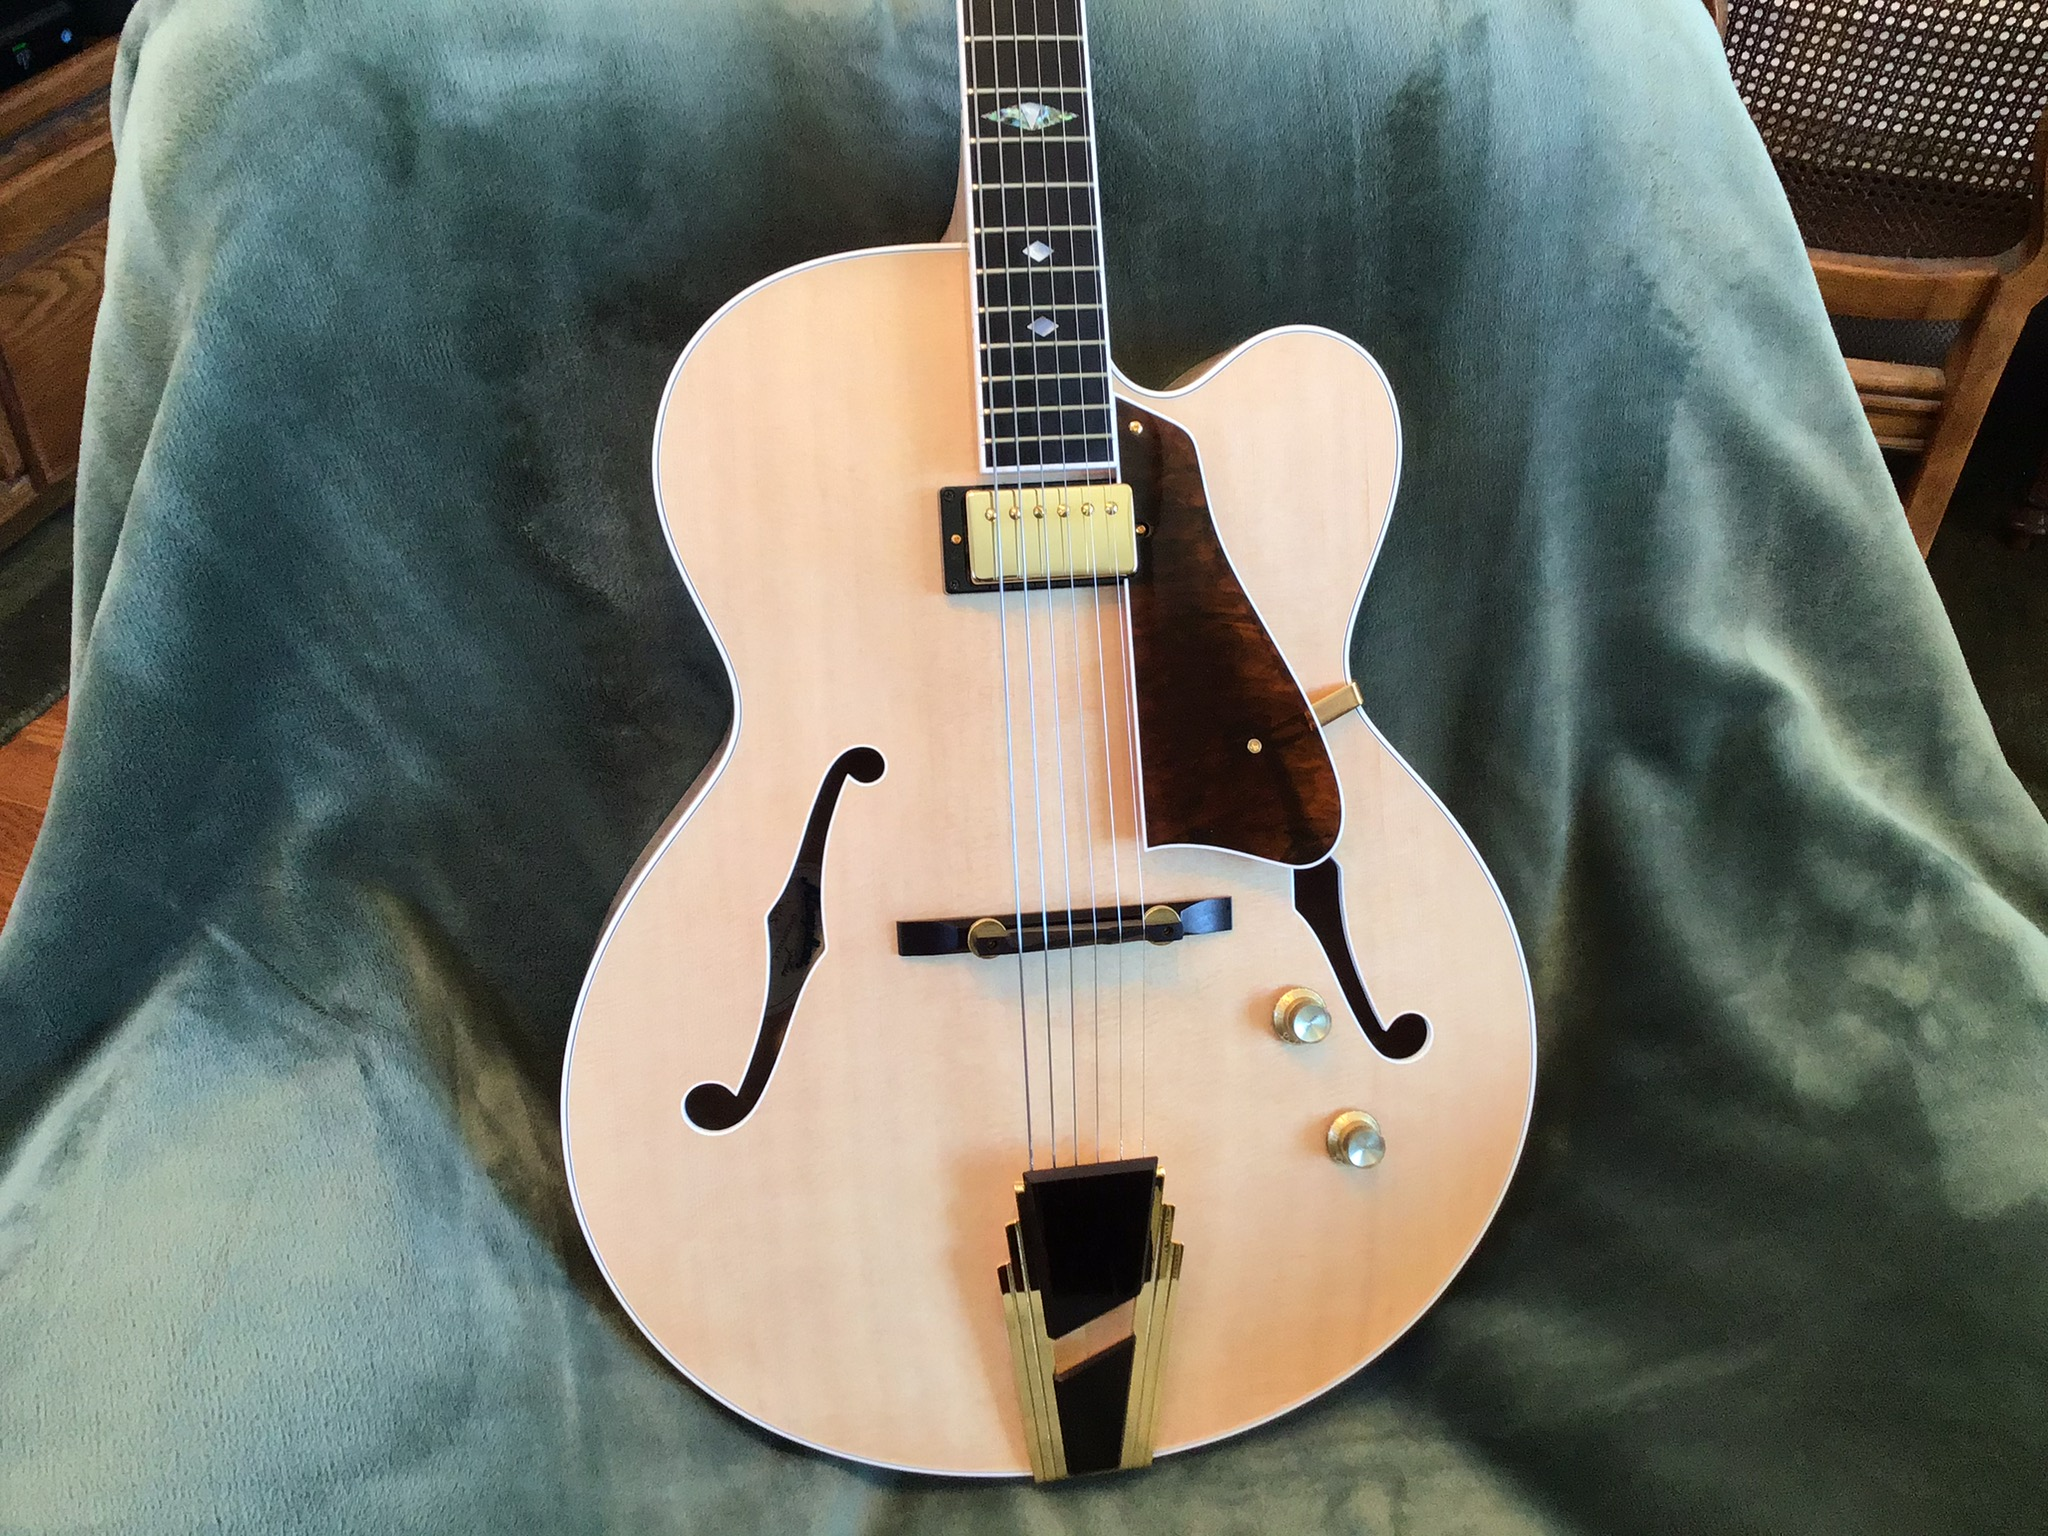 """17"""" Archtop Replacement for an L-5-29f8fa87-3fcc-49e7-993f-bde8e784c554-jpeg"""